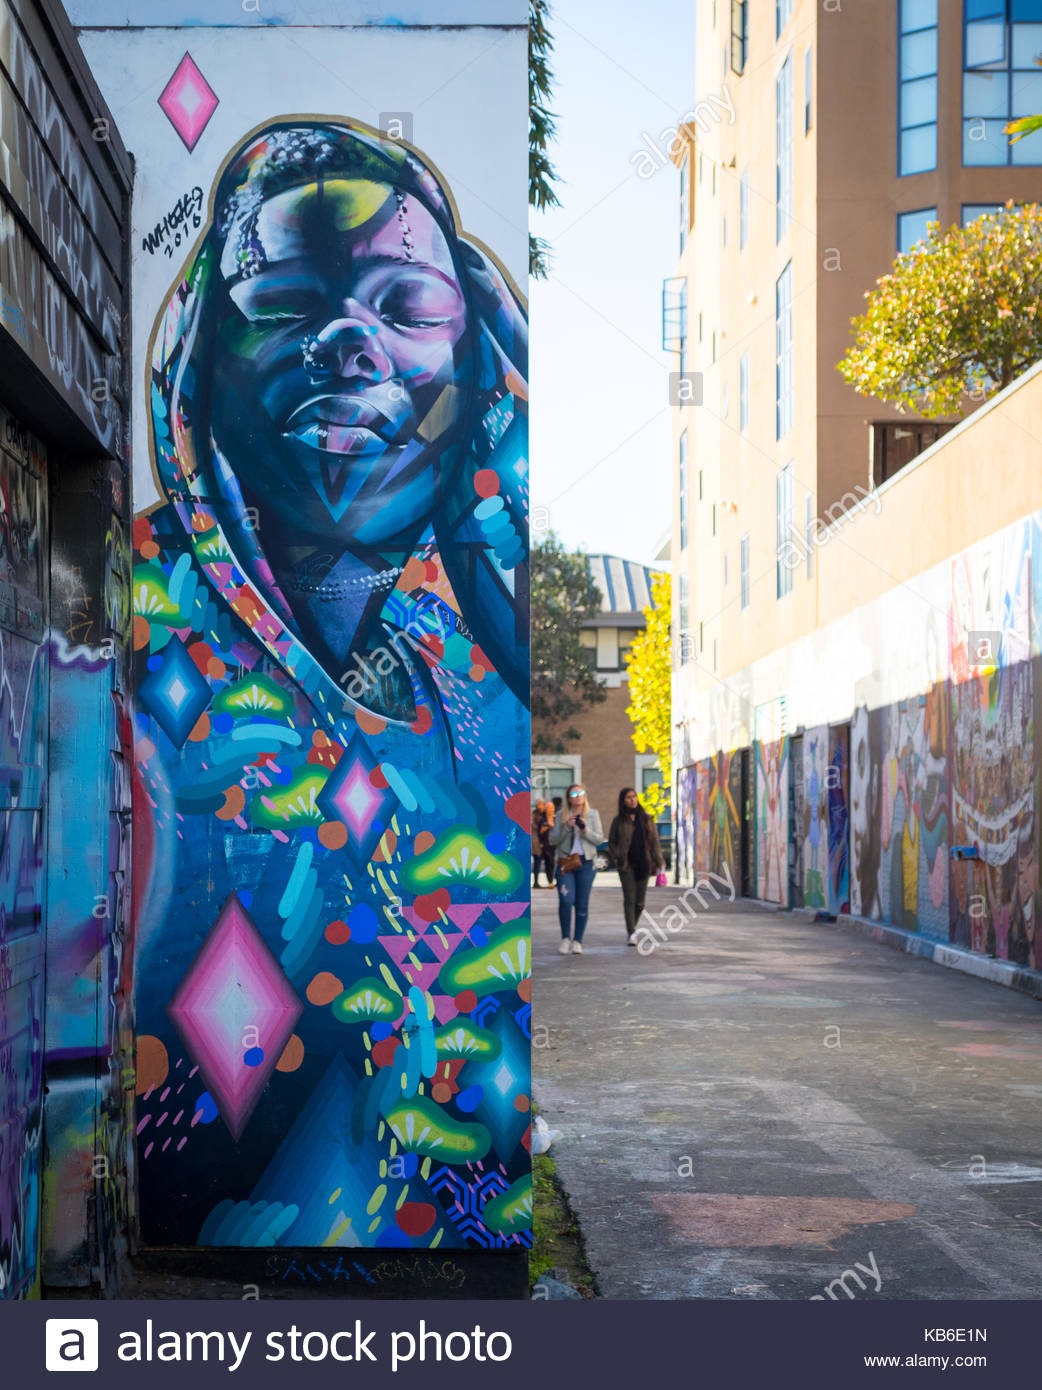 Street art wall murals on Clarion Alley in the Mission District of San Francisco, California. (2016). - Stock Image